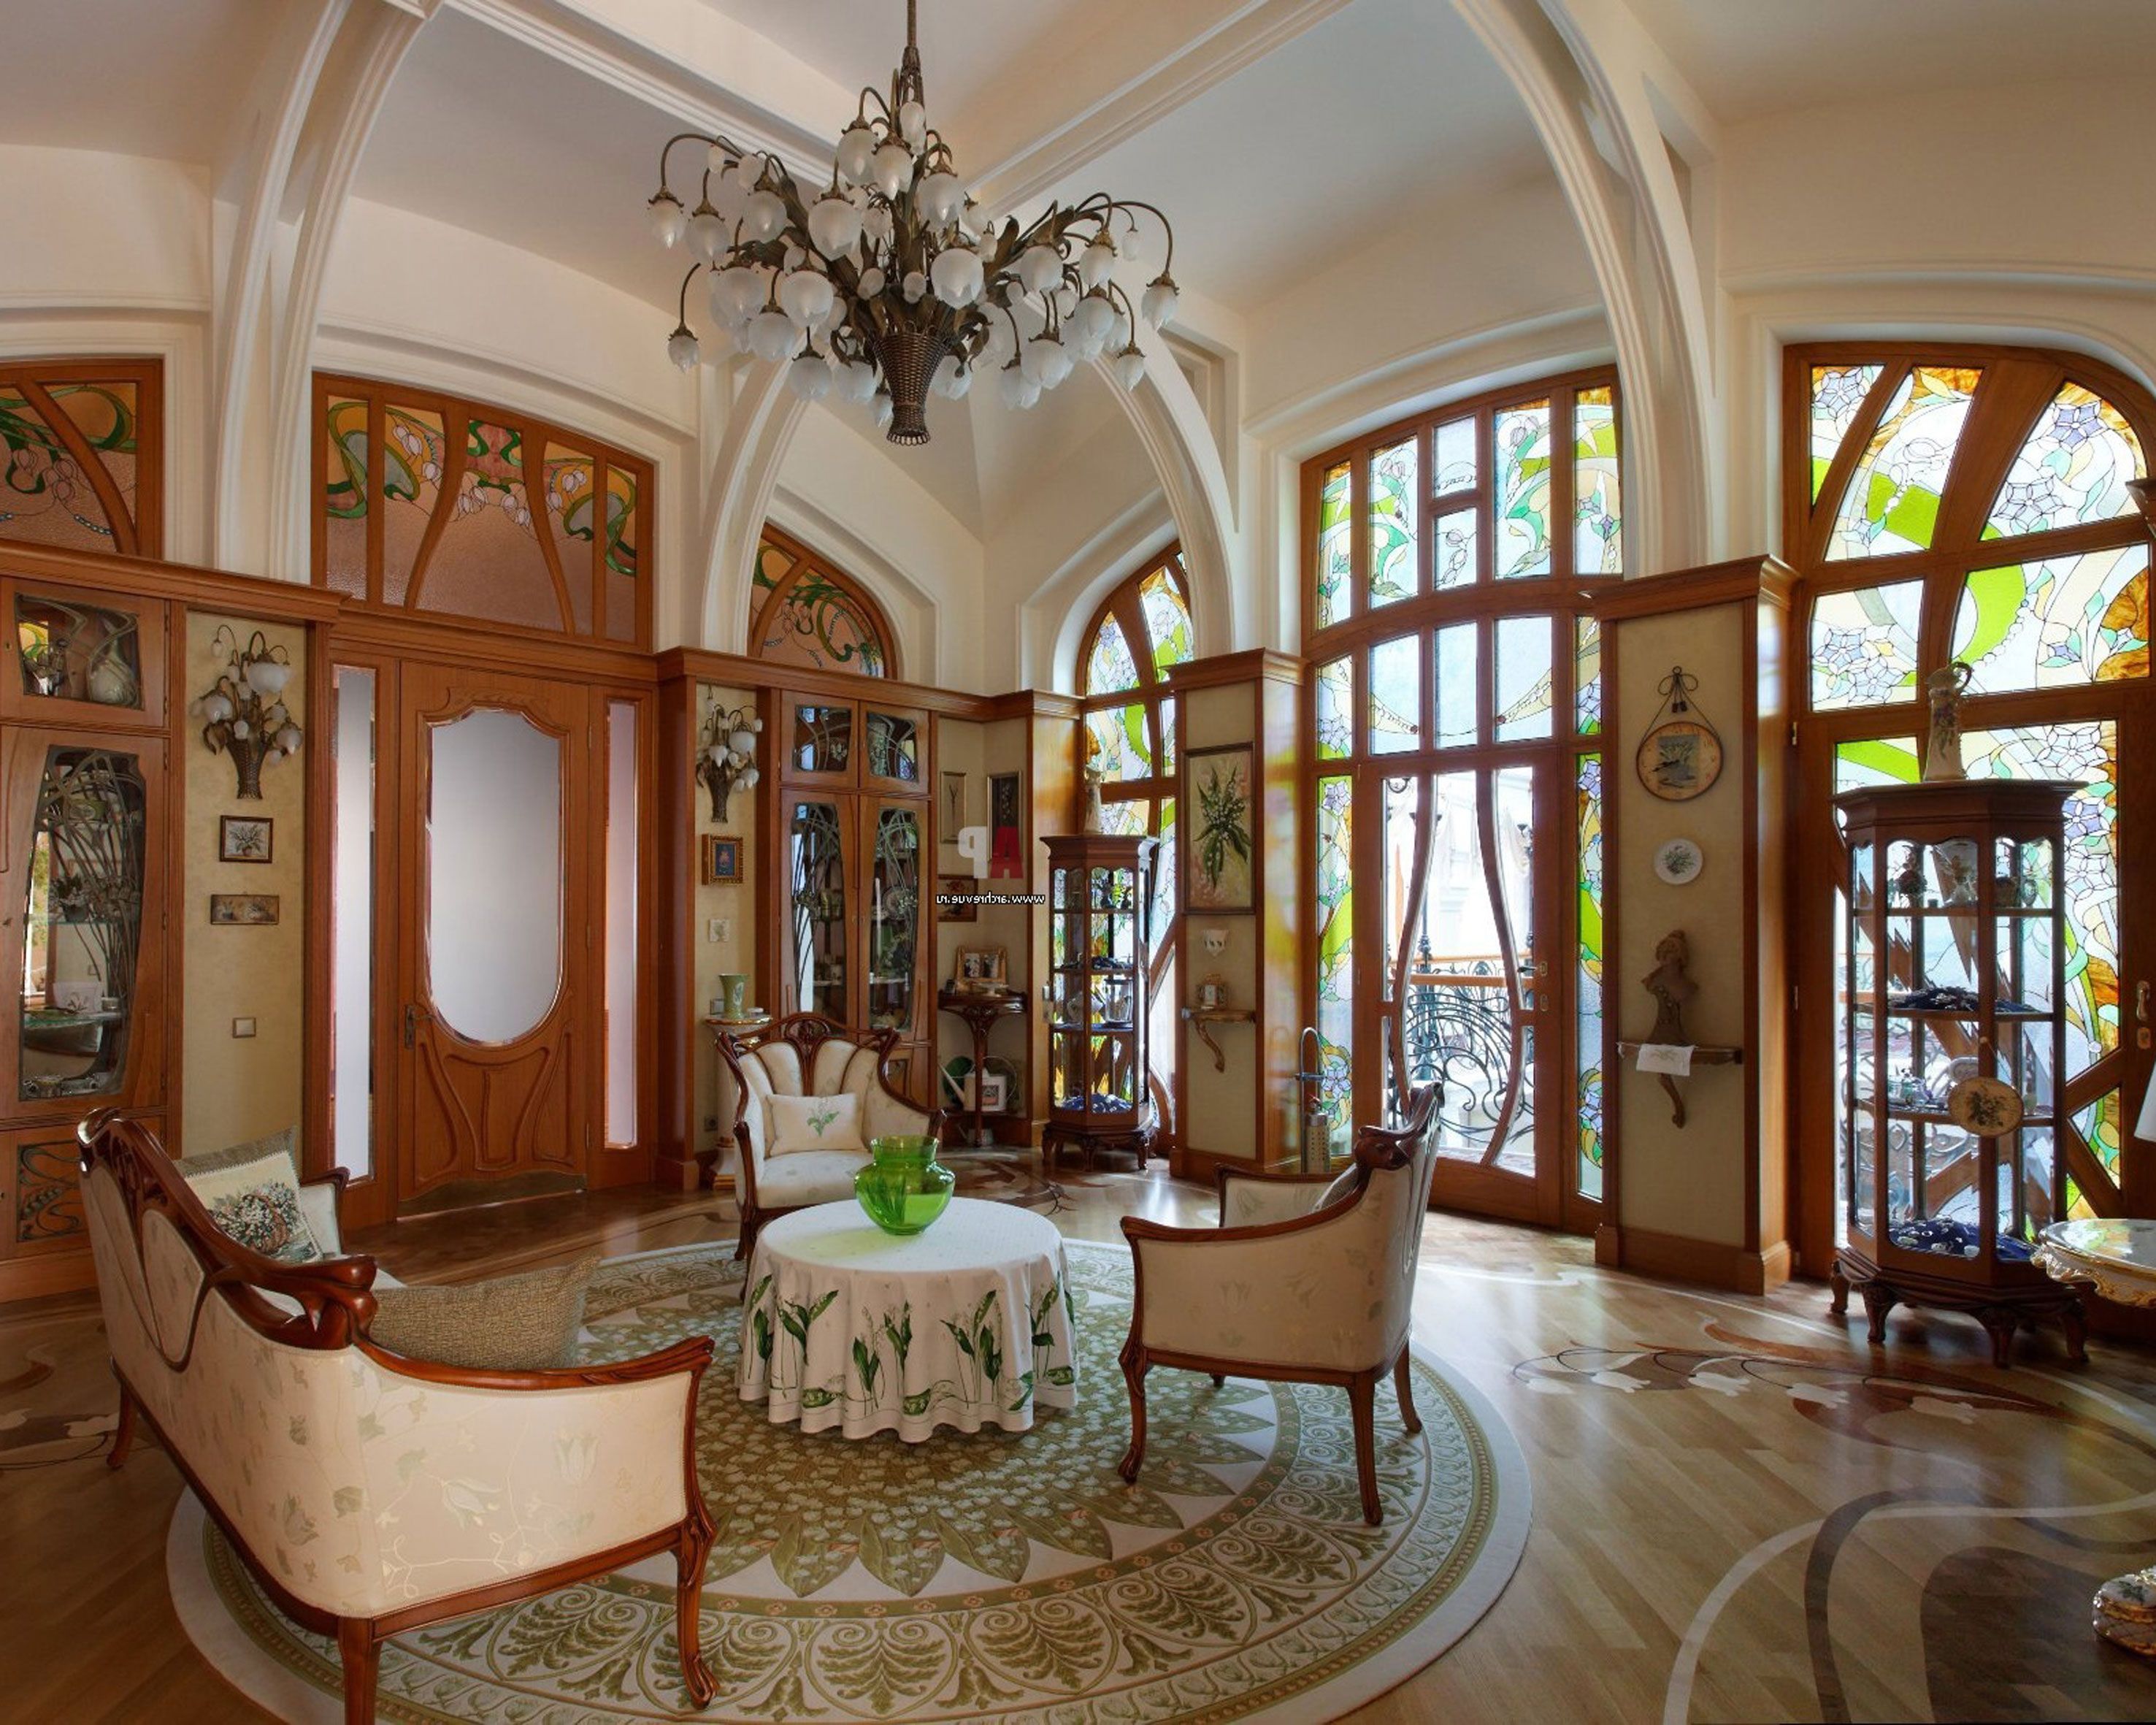 Art-Nouveau-Interior-Design-With-Its-Style-Decor-